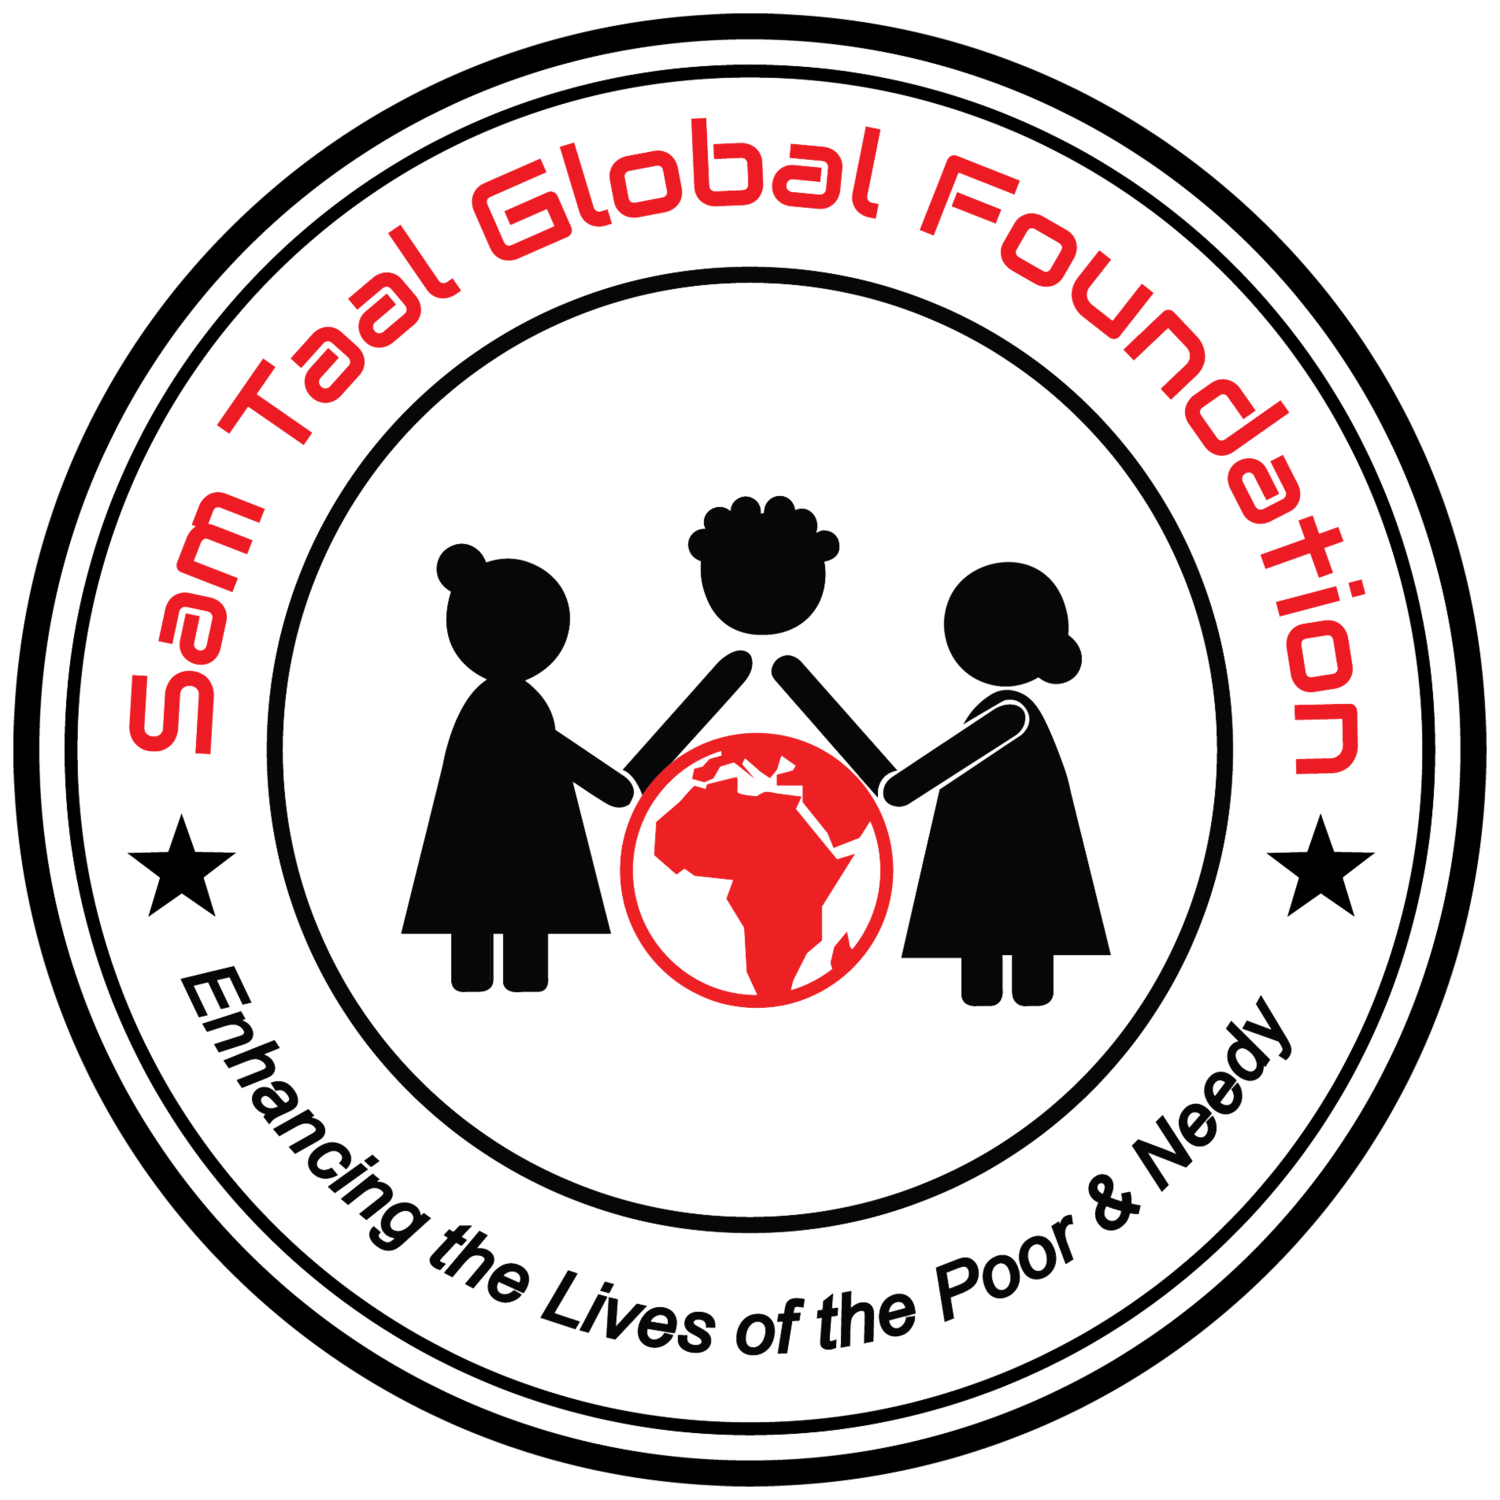 Sam Taal Global Foundation